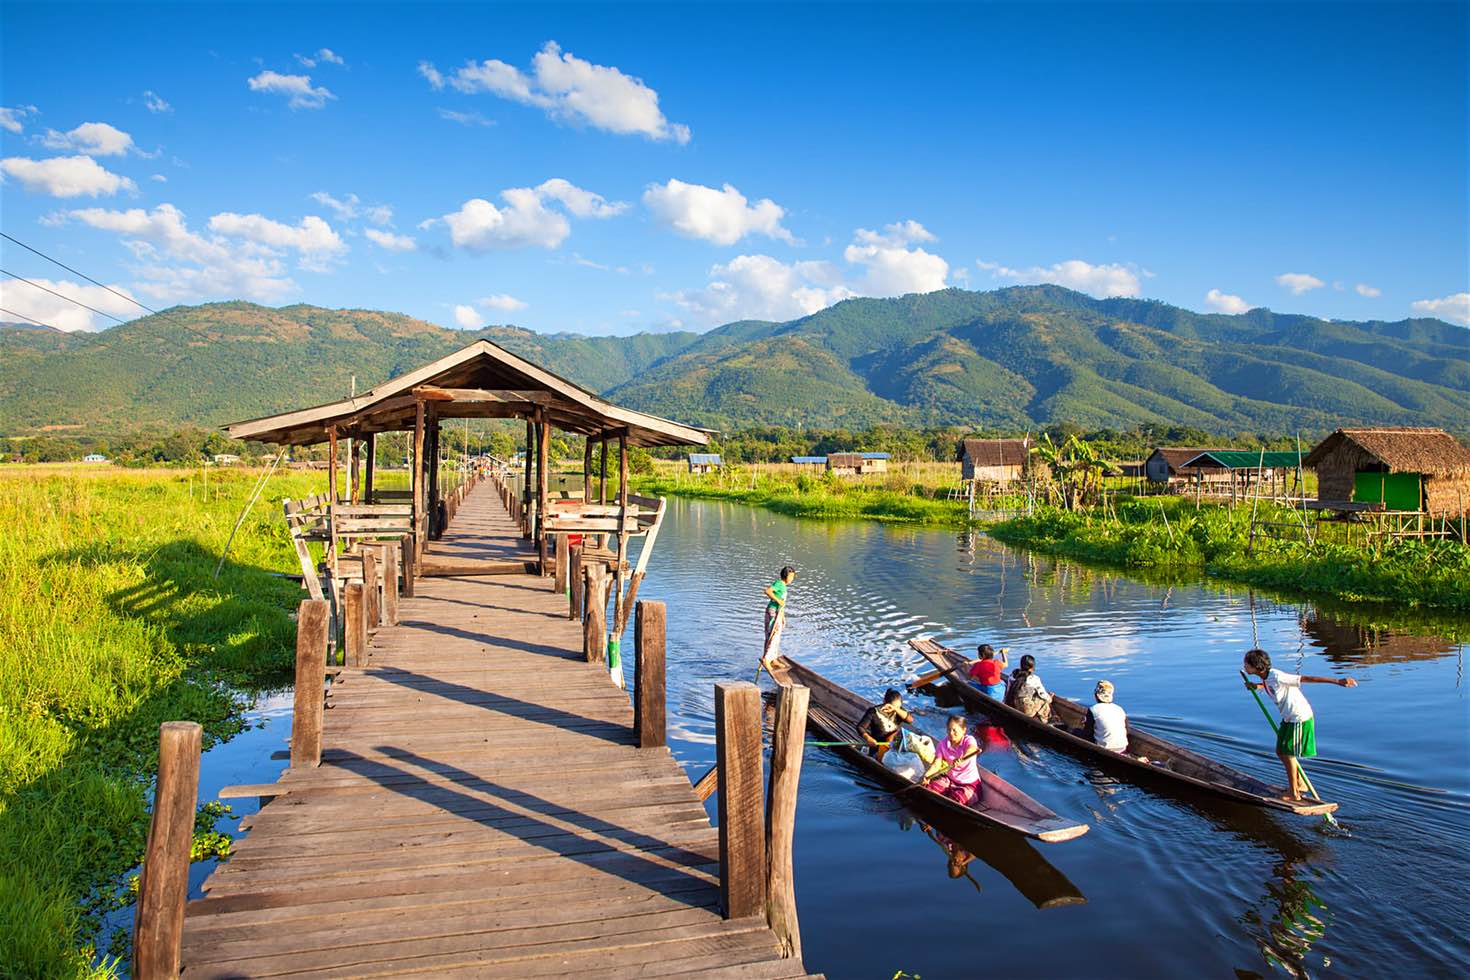 Boats on Inle Lake in Myanmar